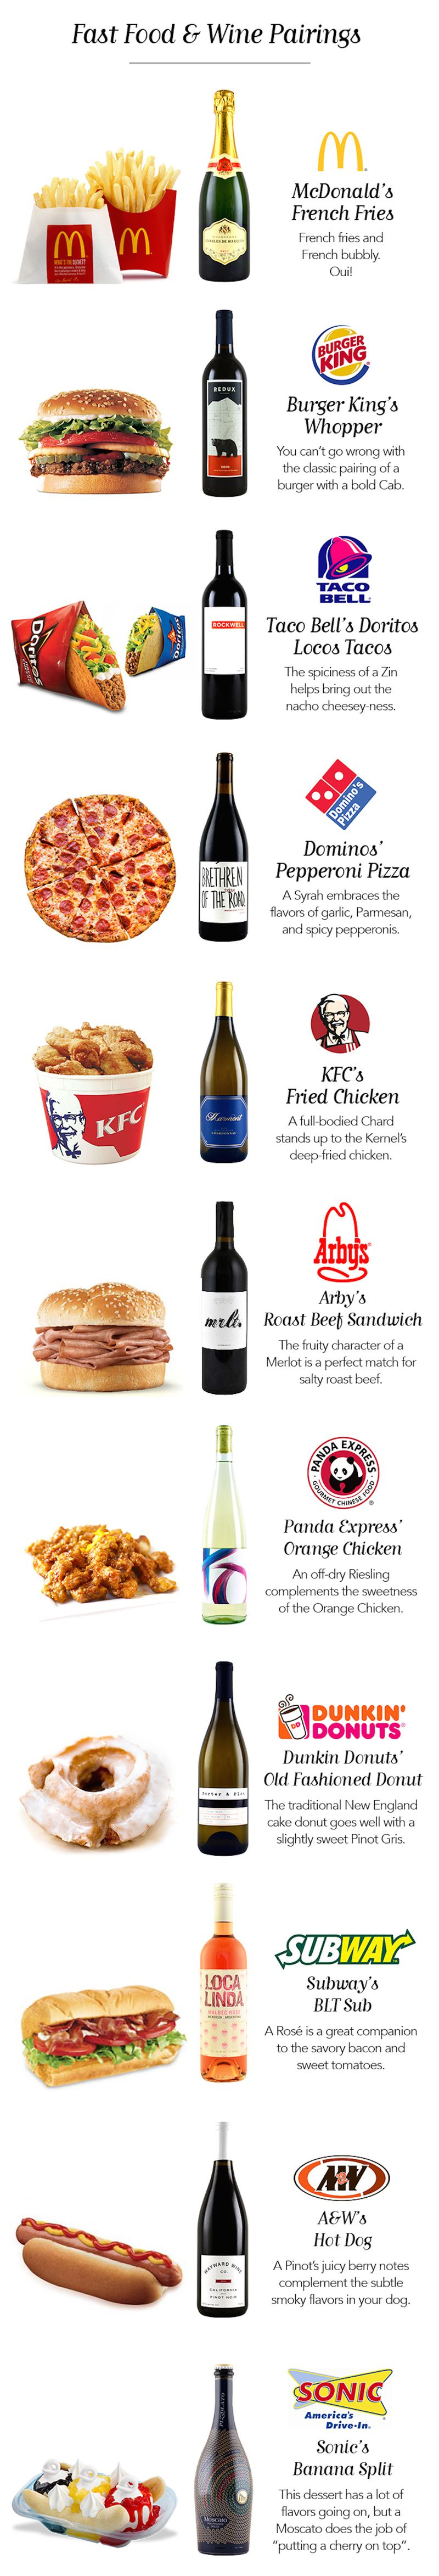 Fast food Wine Pairing Guide